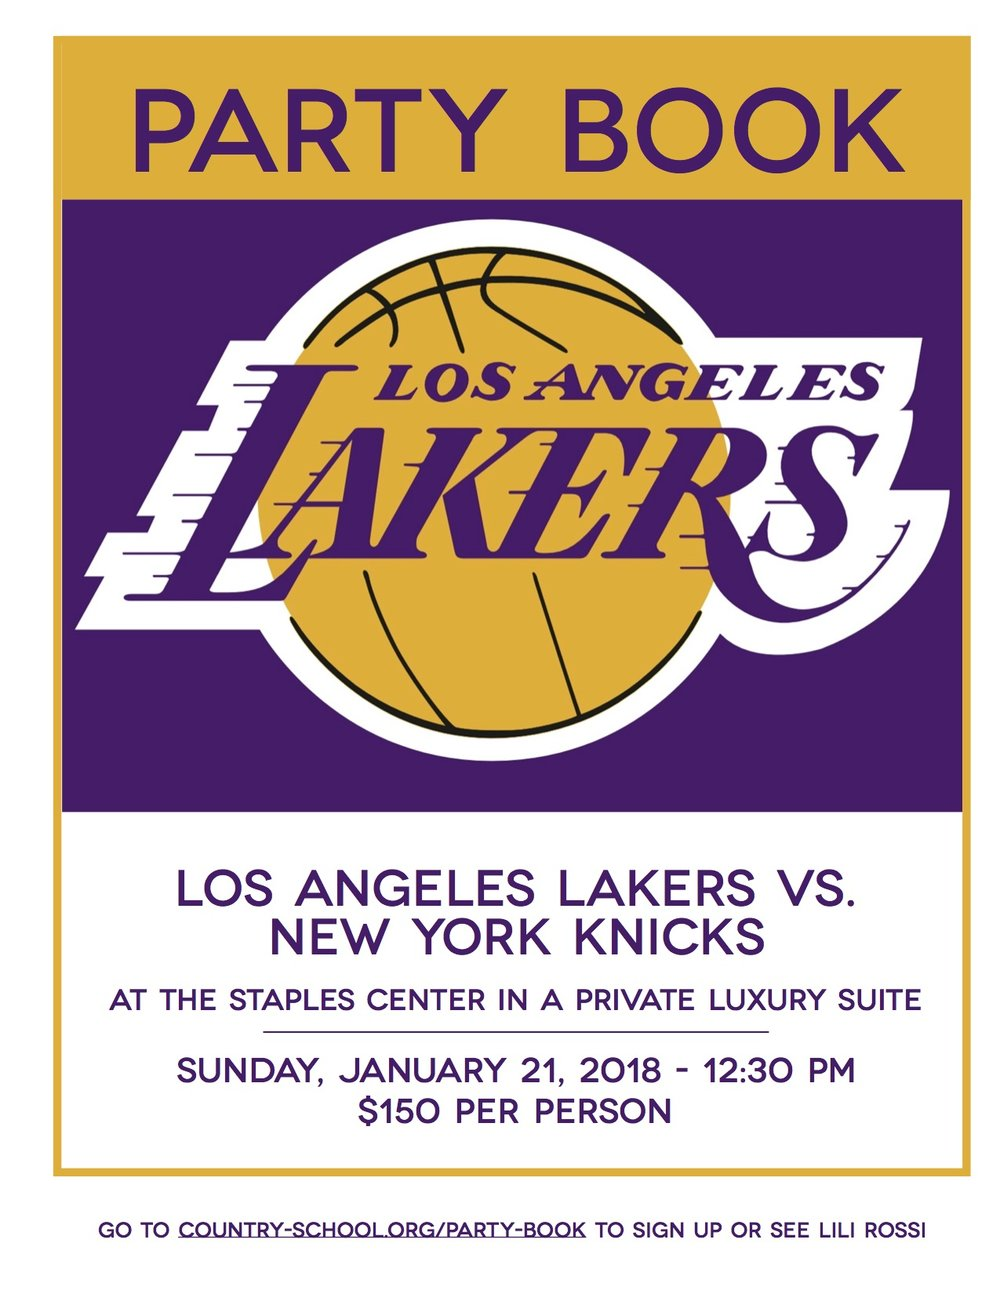 PartyBook_lakers_letter.jpg